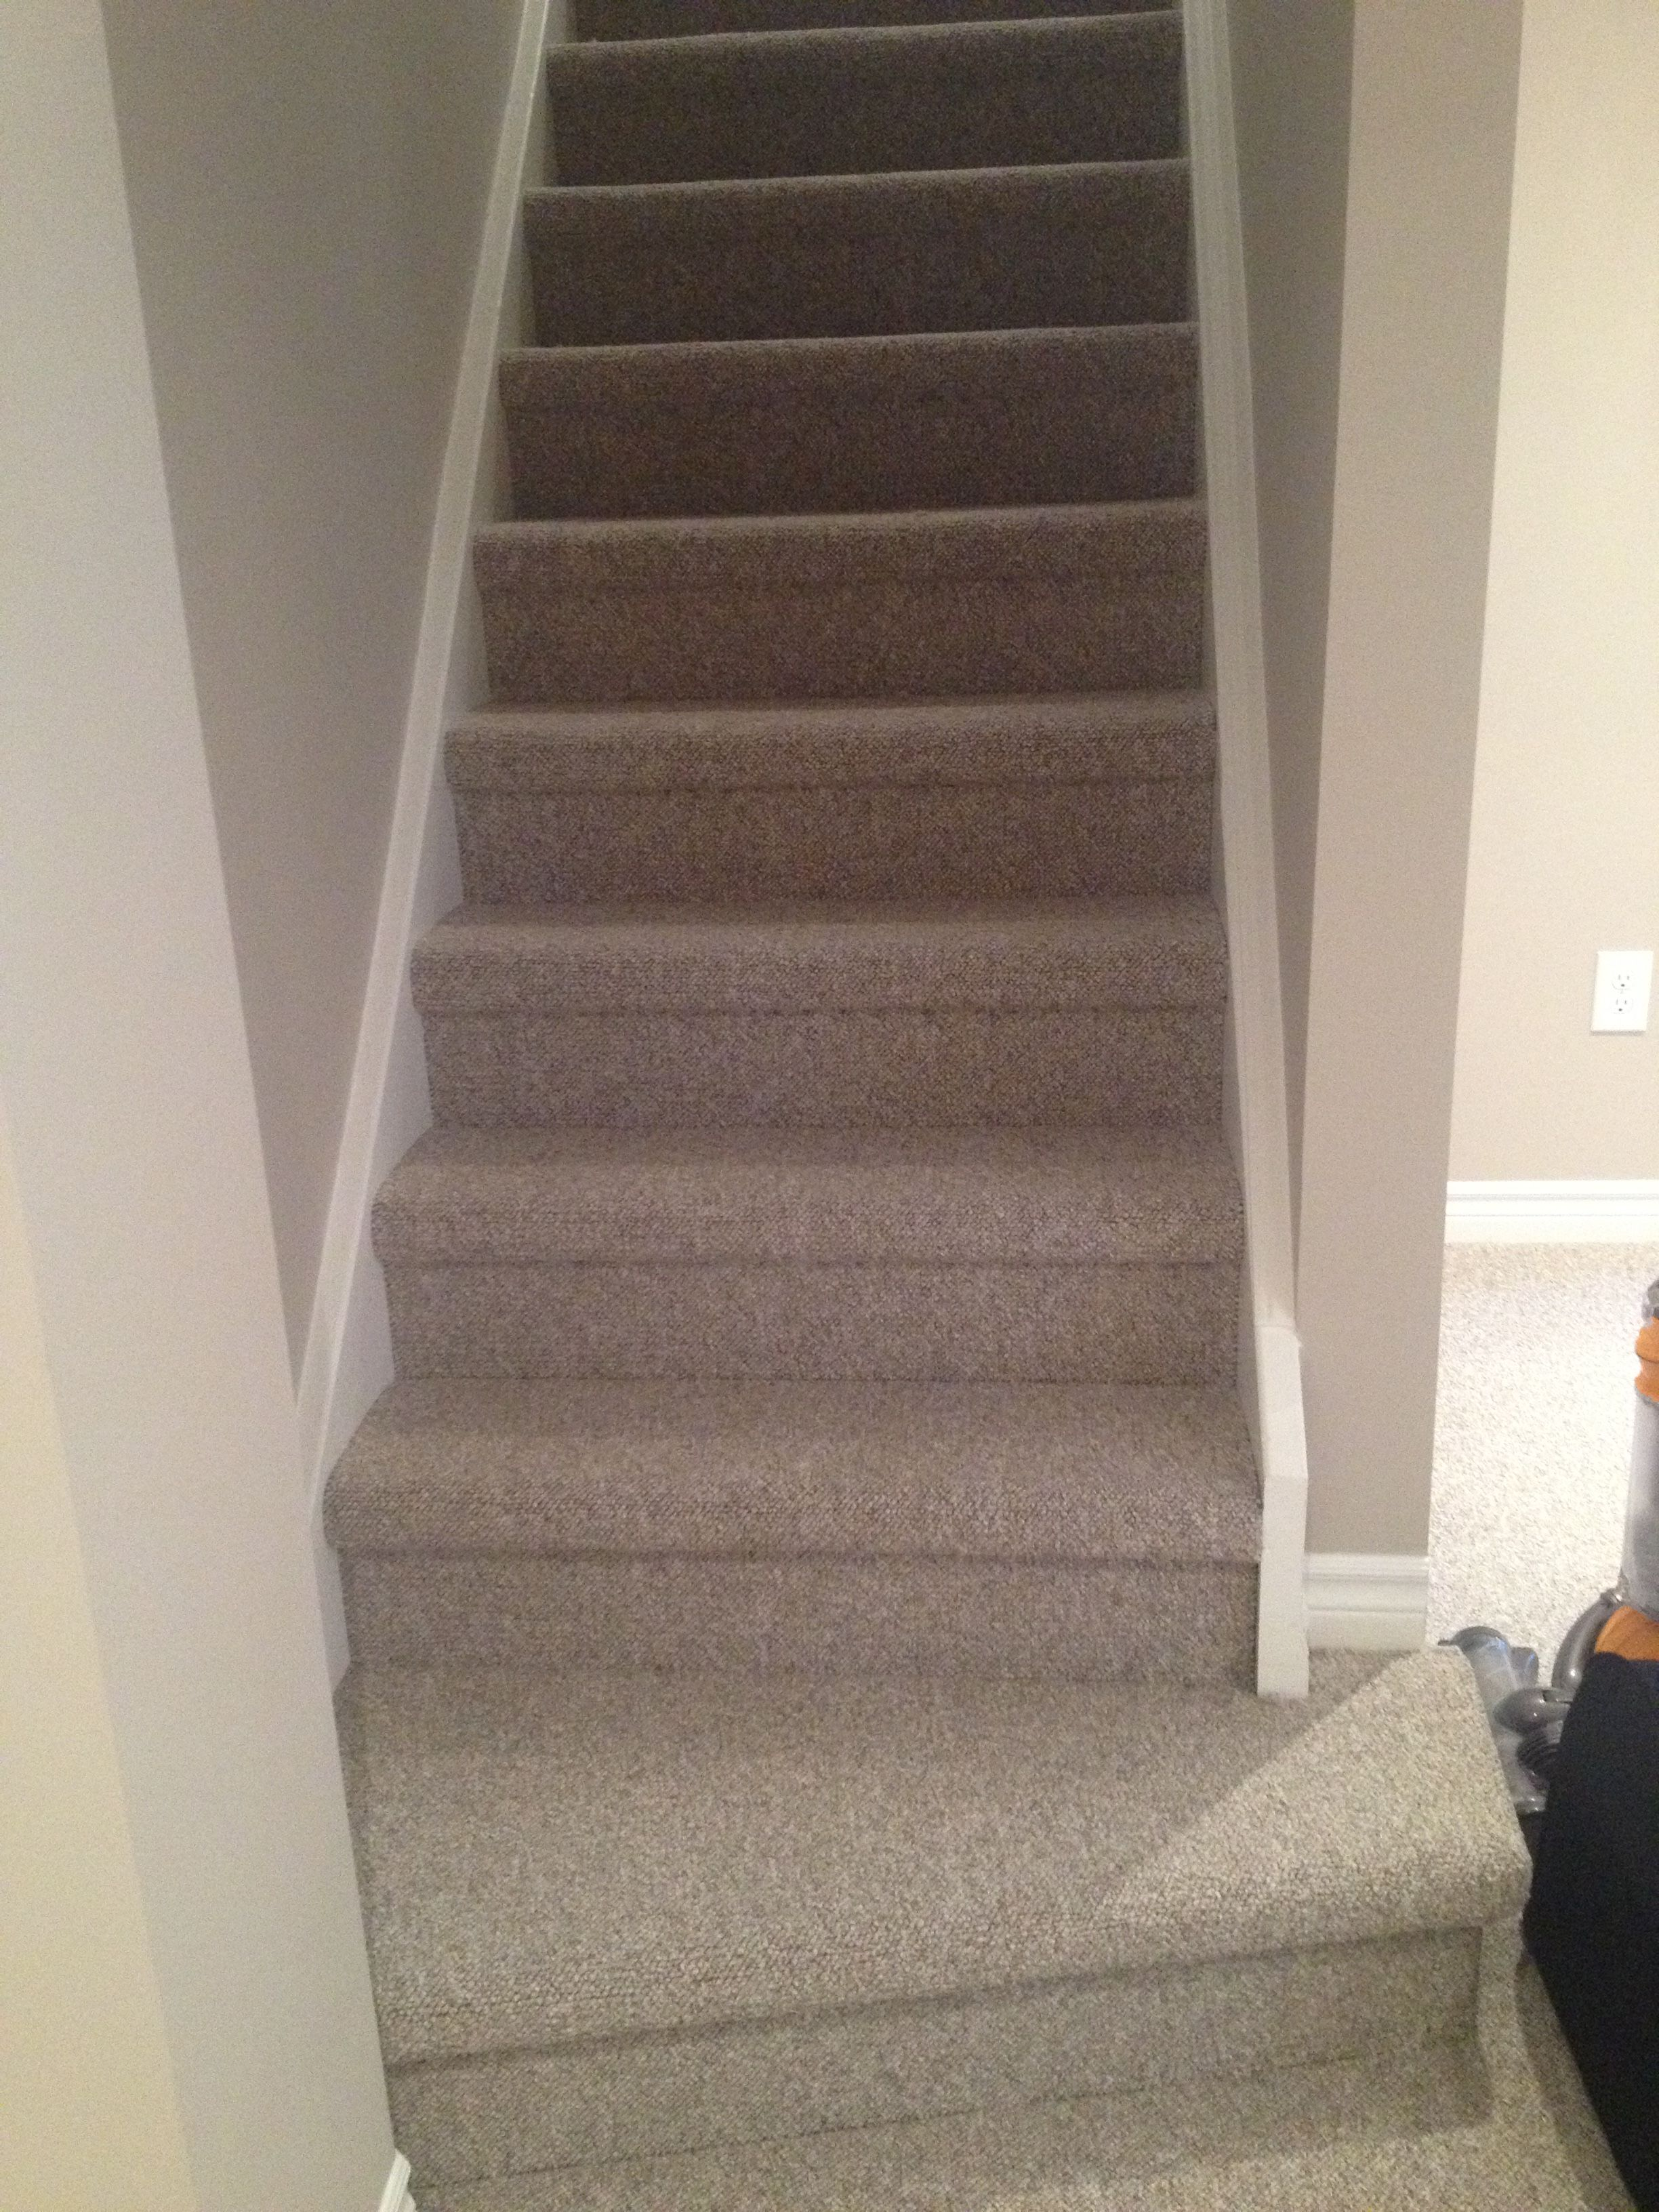 Best Berber Carpet On Stairs Berber Carpet Carpet Stairs 400 x 300